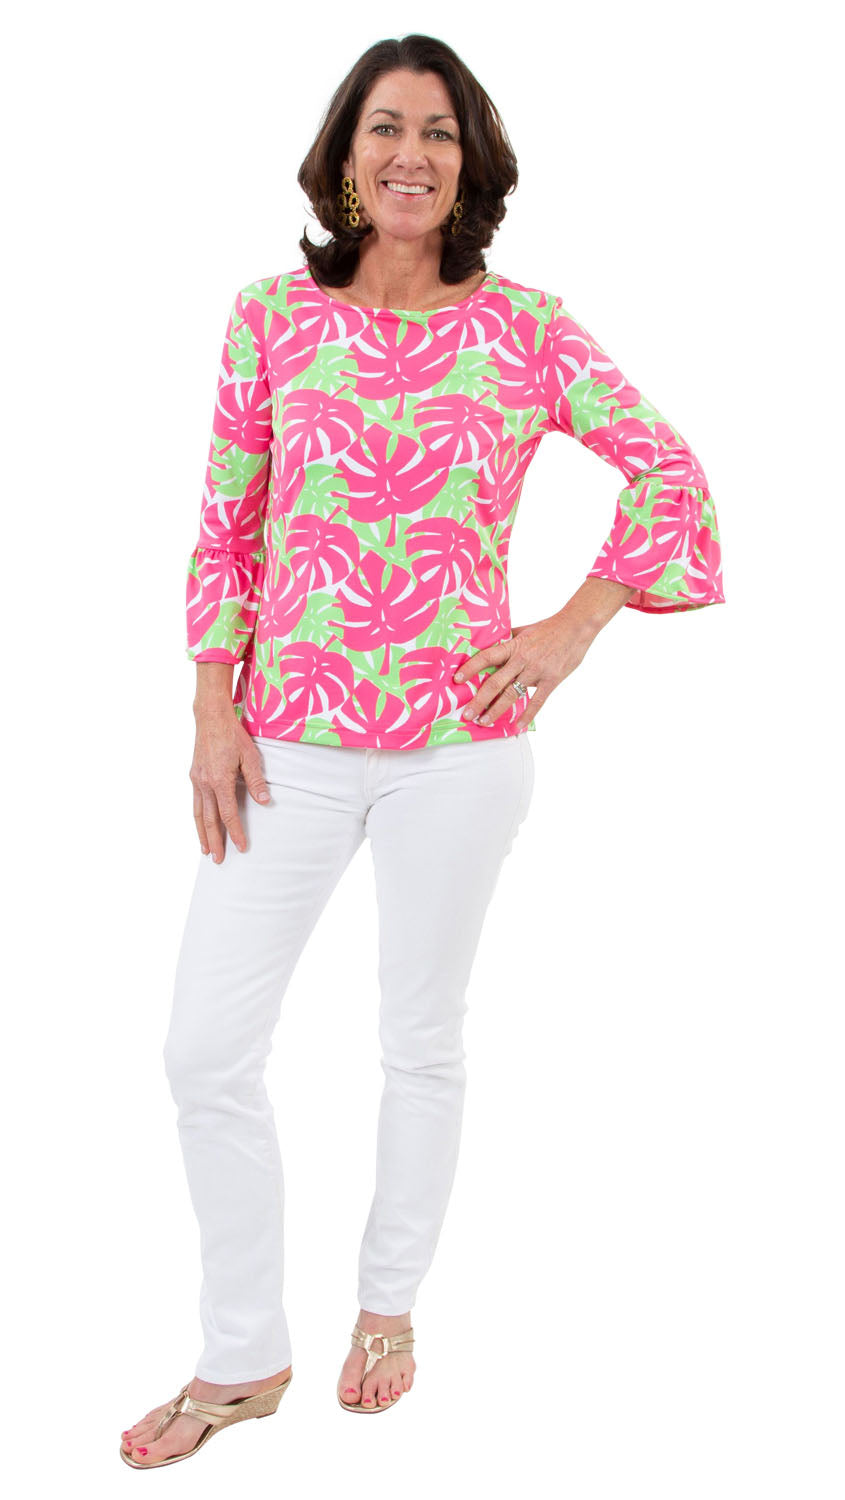 Haley Top - Pink/Green Dancing Palms- SAMPLE FINAL SALE